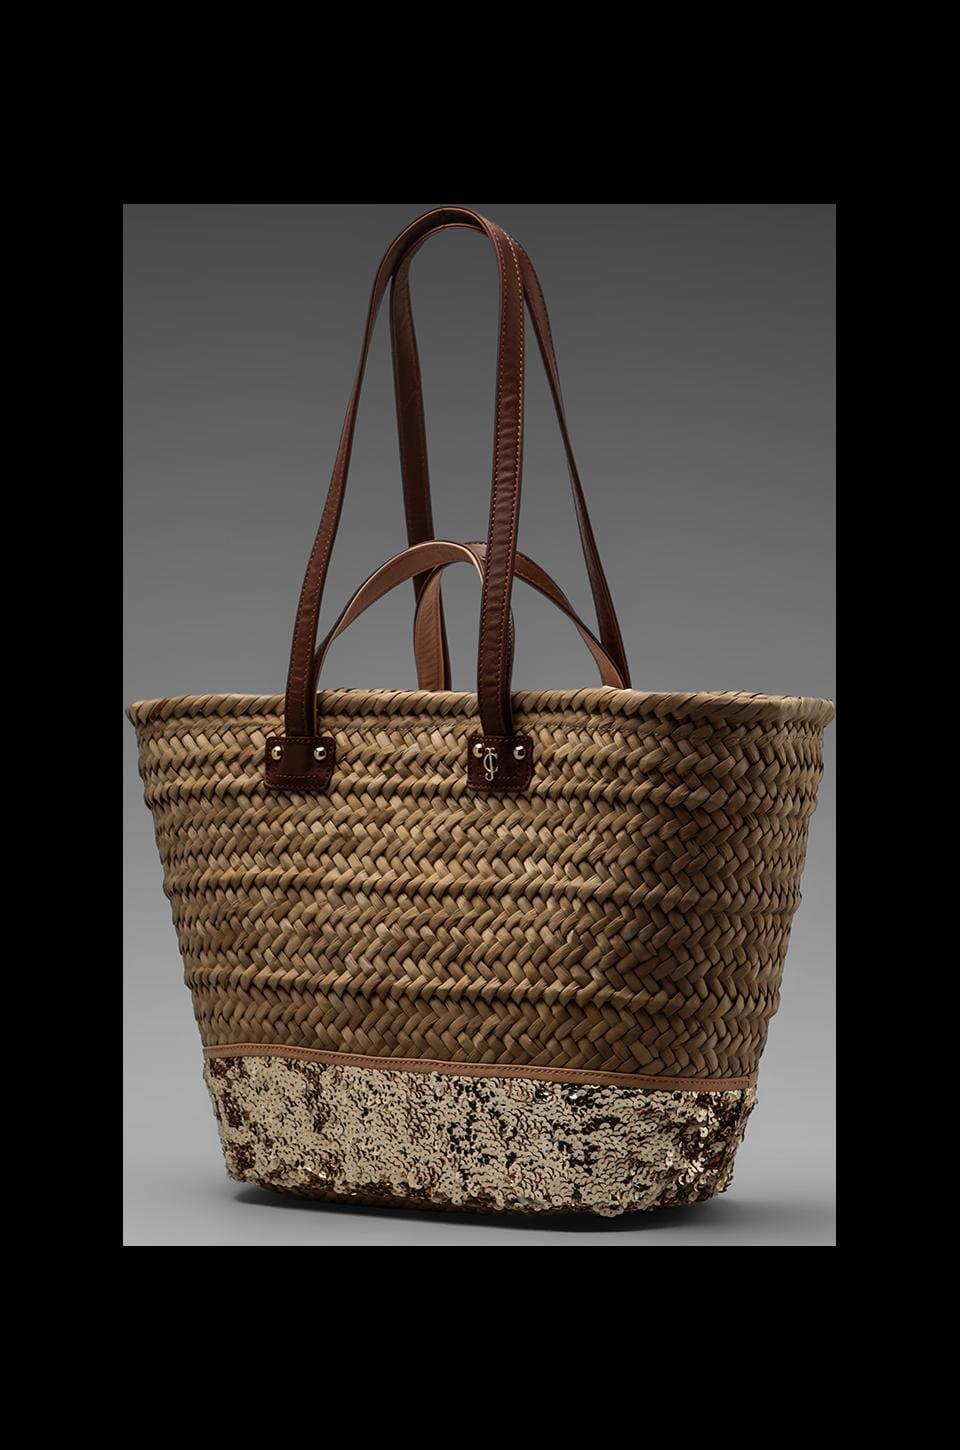 Juicy Couture Malibu Straw and Sequin Beach Tote in Creamsicle/Natural